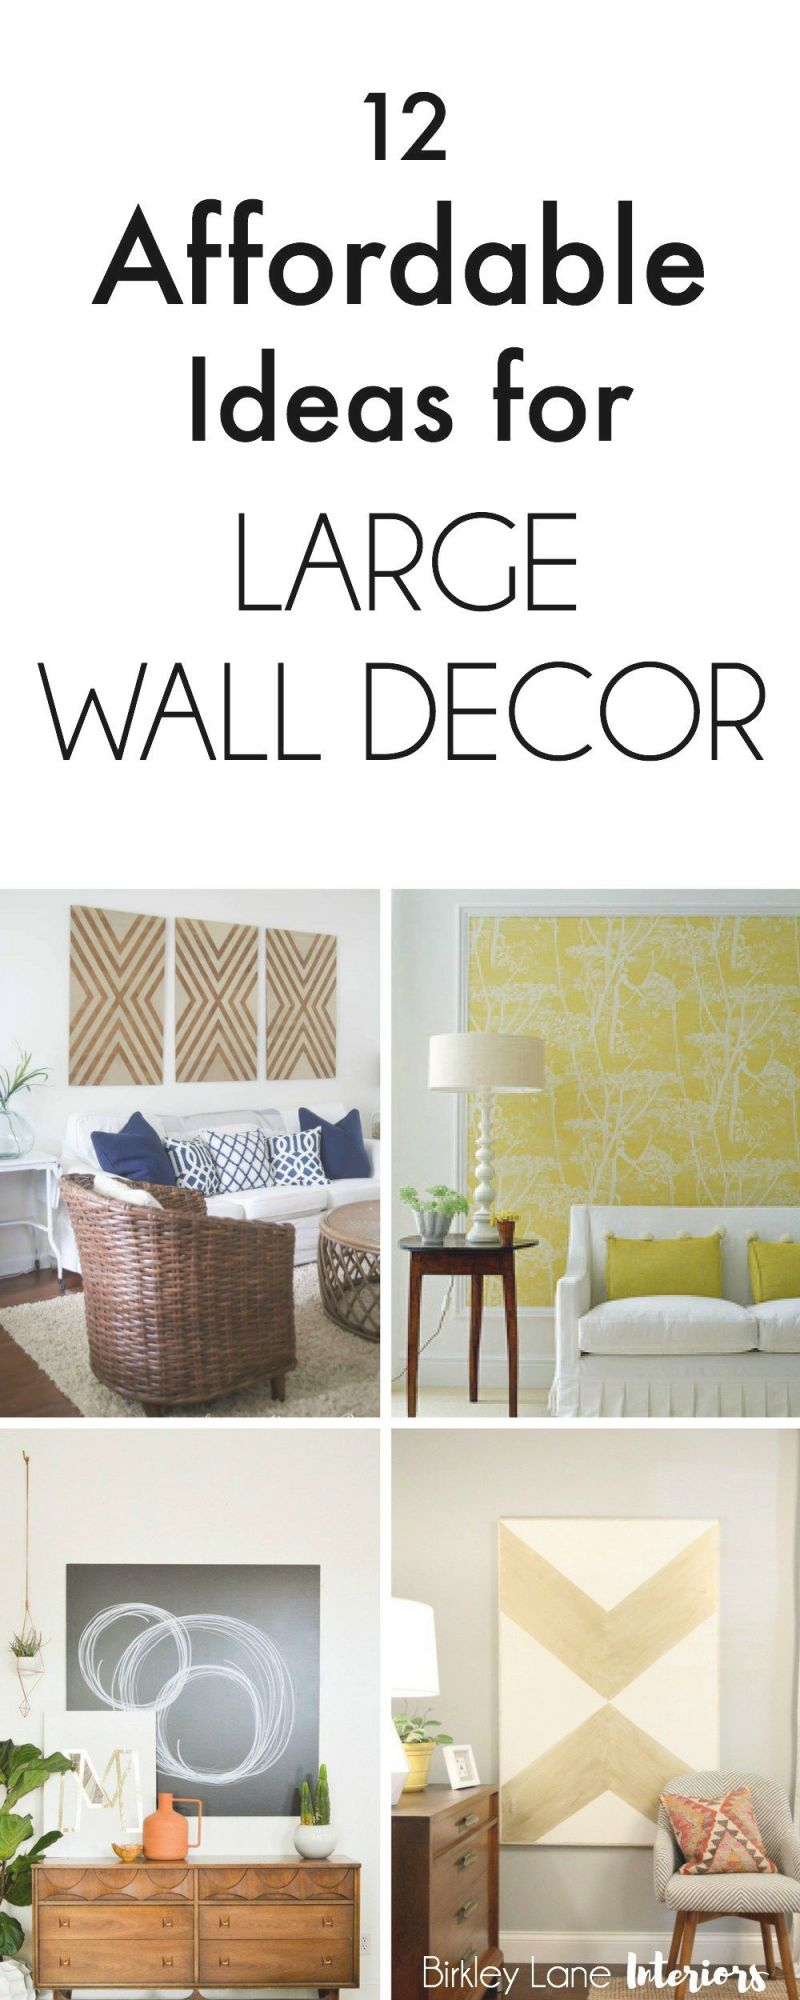 12 Affordable Ideas For Large Wall Decor | Birkley Lane throughout Elegant Large Wall Decor Ideas For Living Room